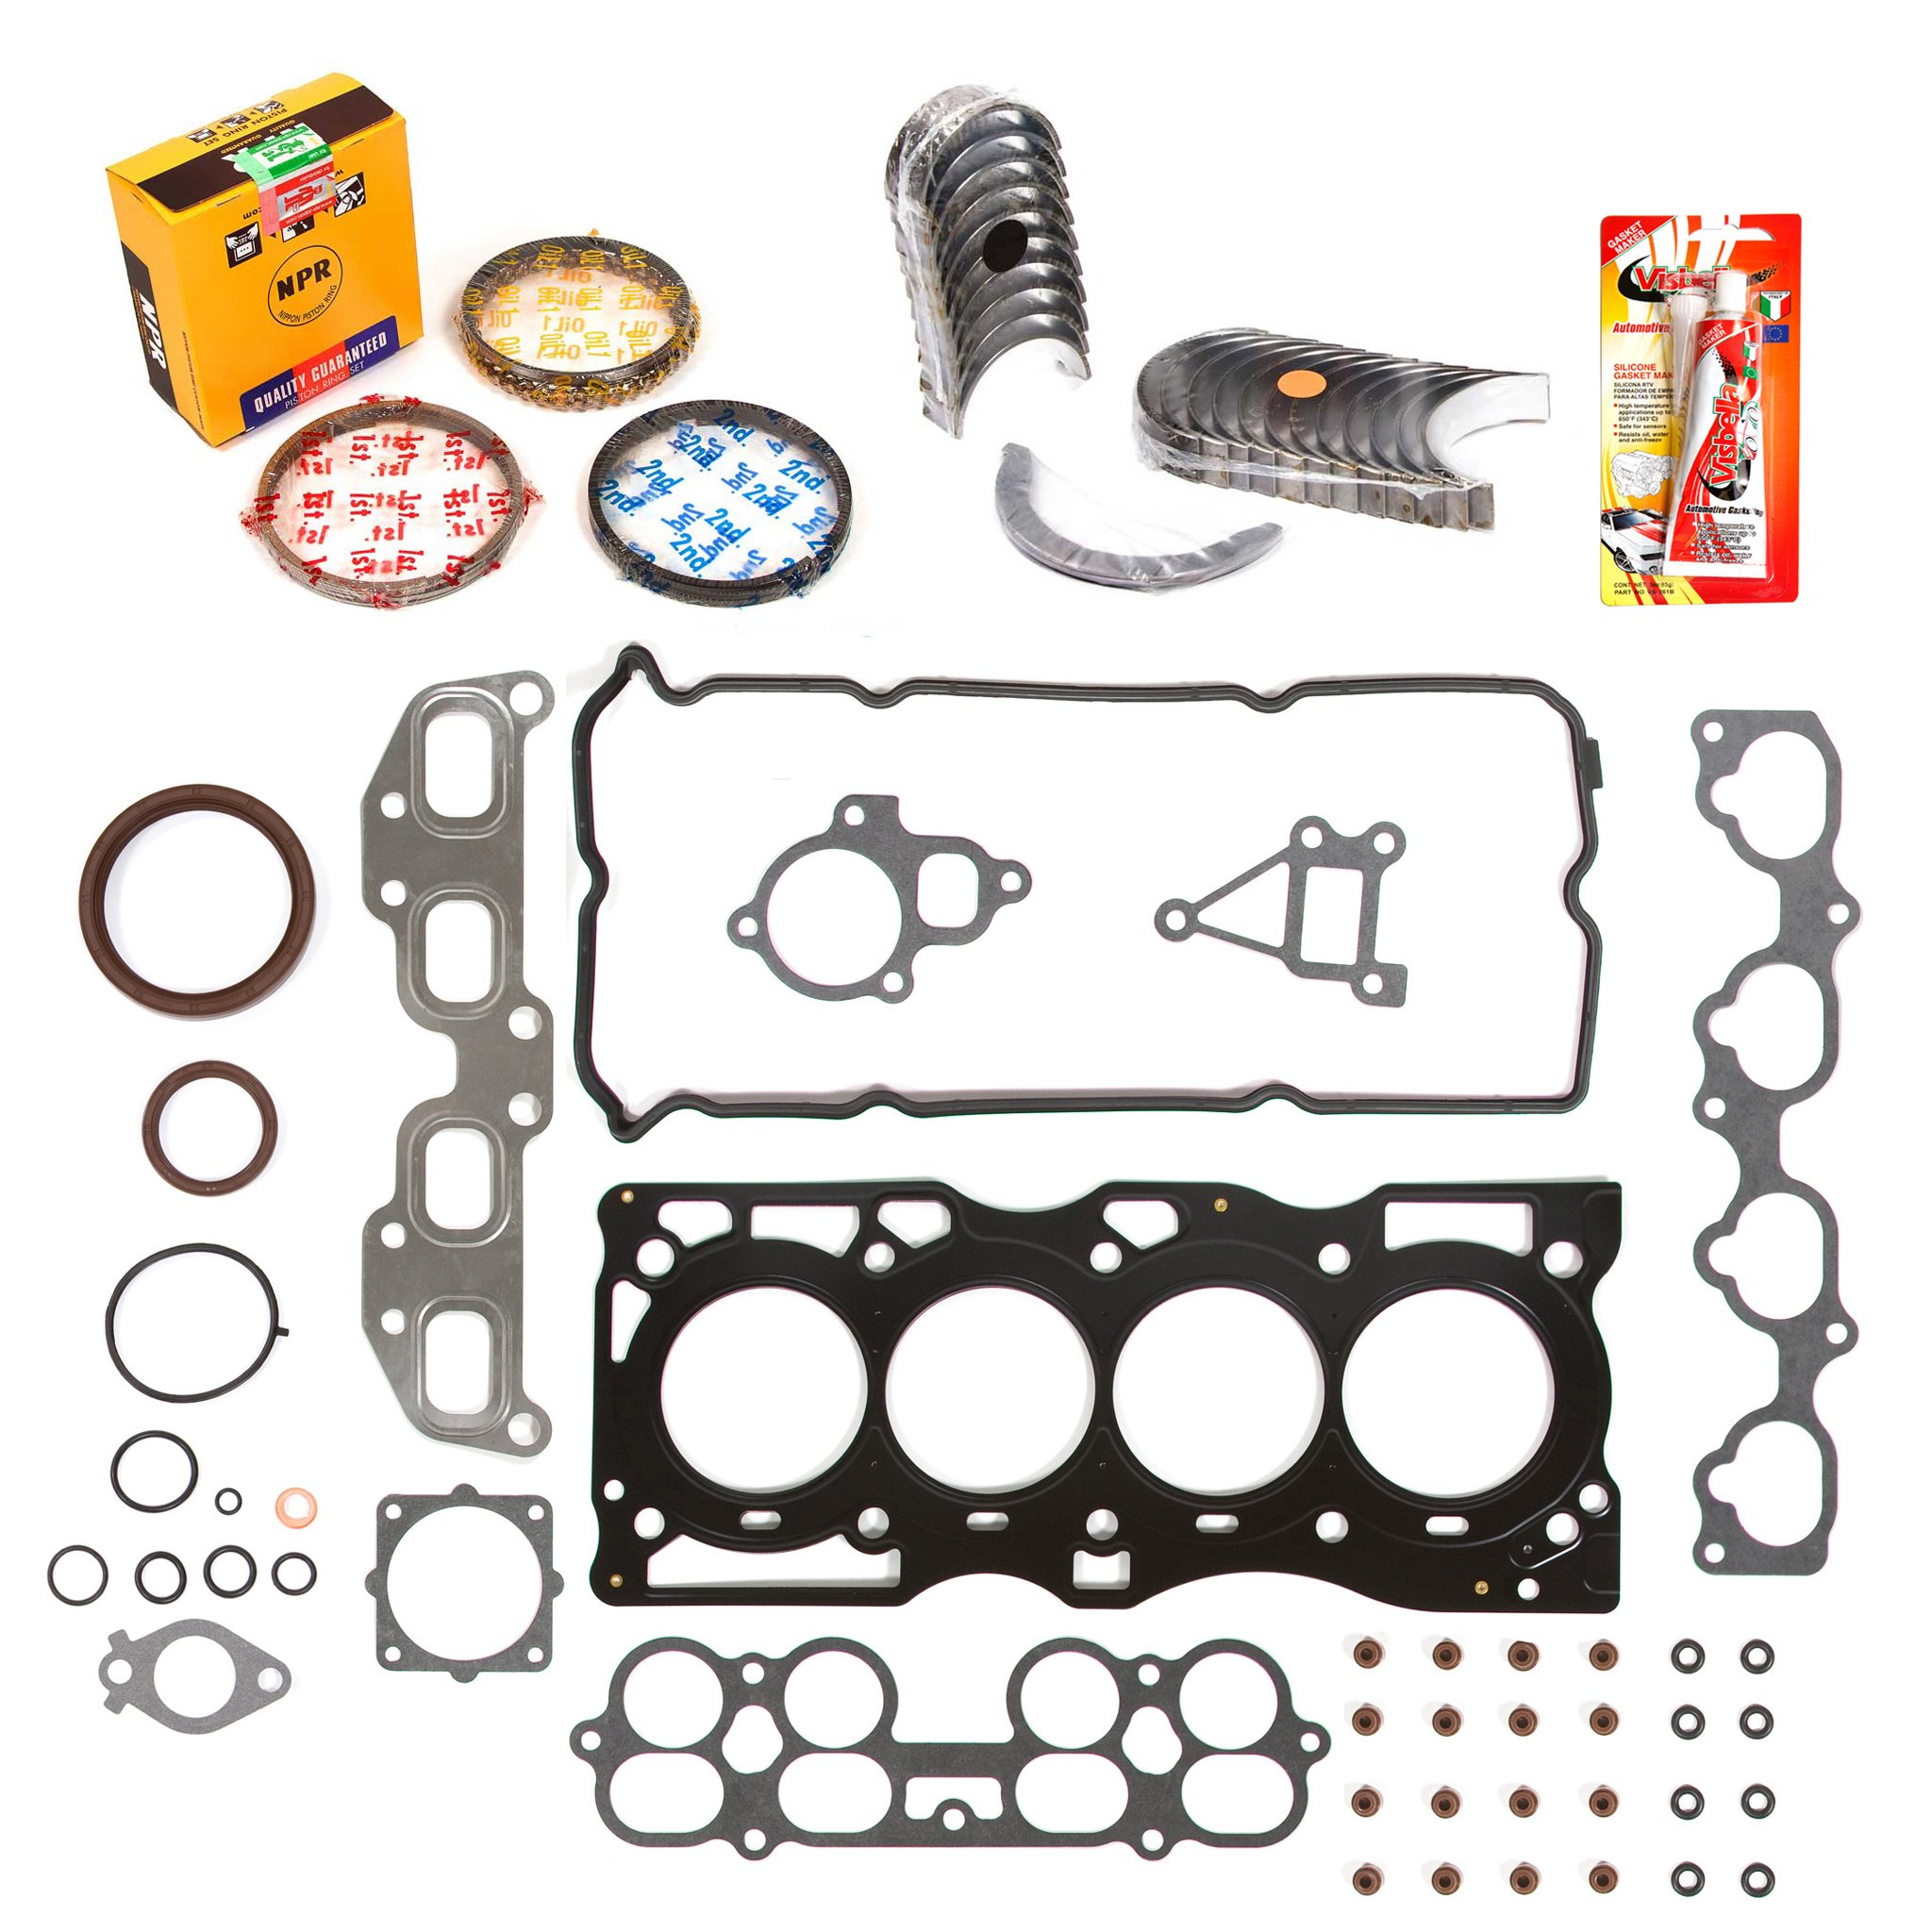 Domestic Gaskets Engine Rering Kit FSBRR3032\0\0\0 02-06 Nissan Altima Sentra 2.5 QR25DE Full Gasket Set, Standard Size Main Rod Bearings, Standard Size Piston Rings